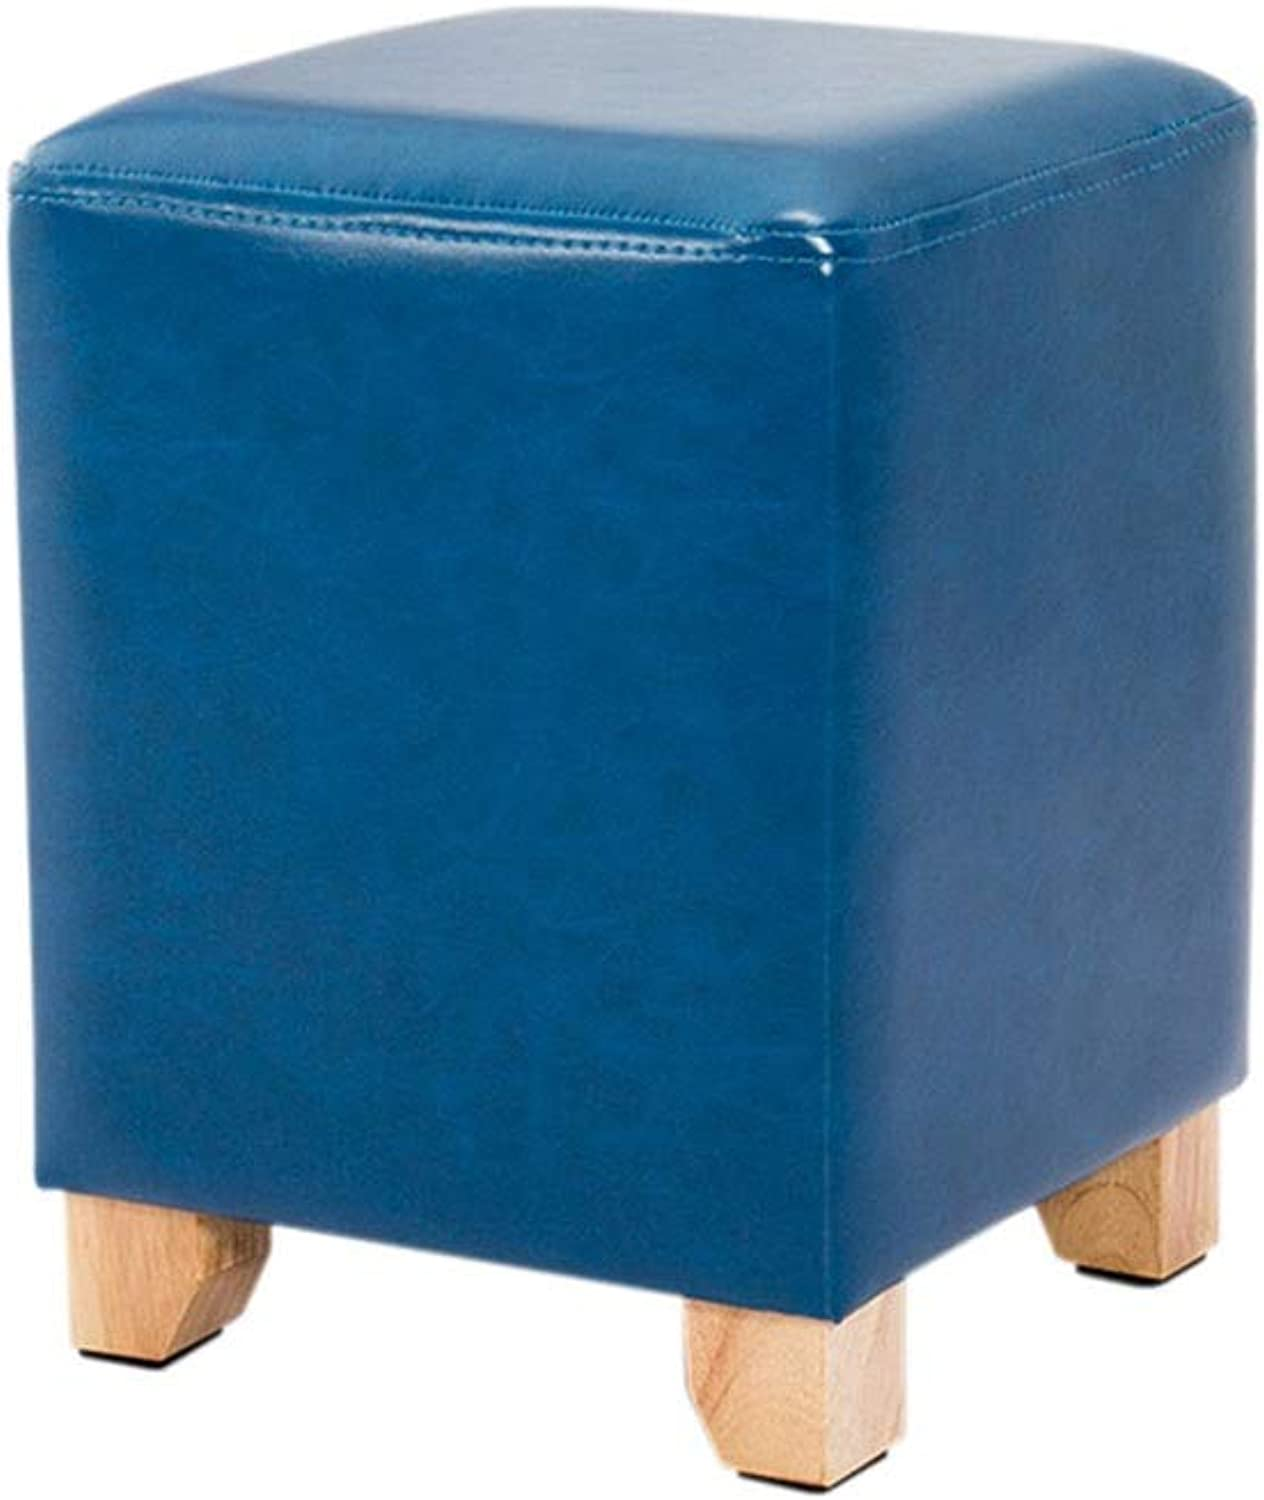 Imitation Leather Change shoes Bench Waterproof Sofa Stool Living Room Footstool Makeup Stool Height 40 × Width 30cm GW (color   bluee)